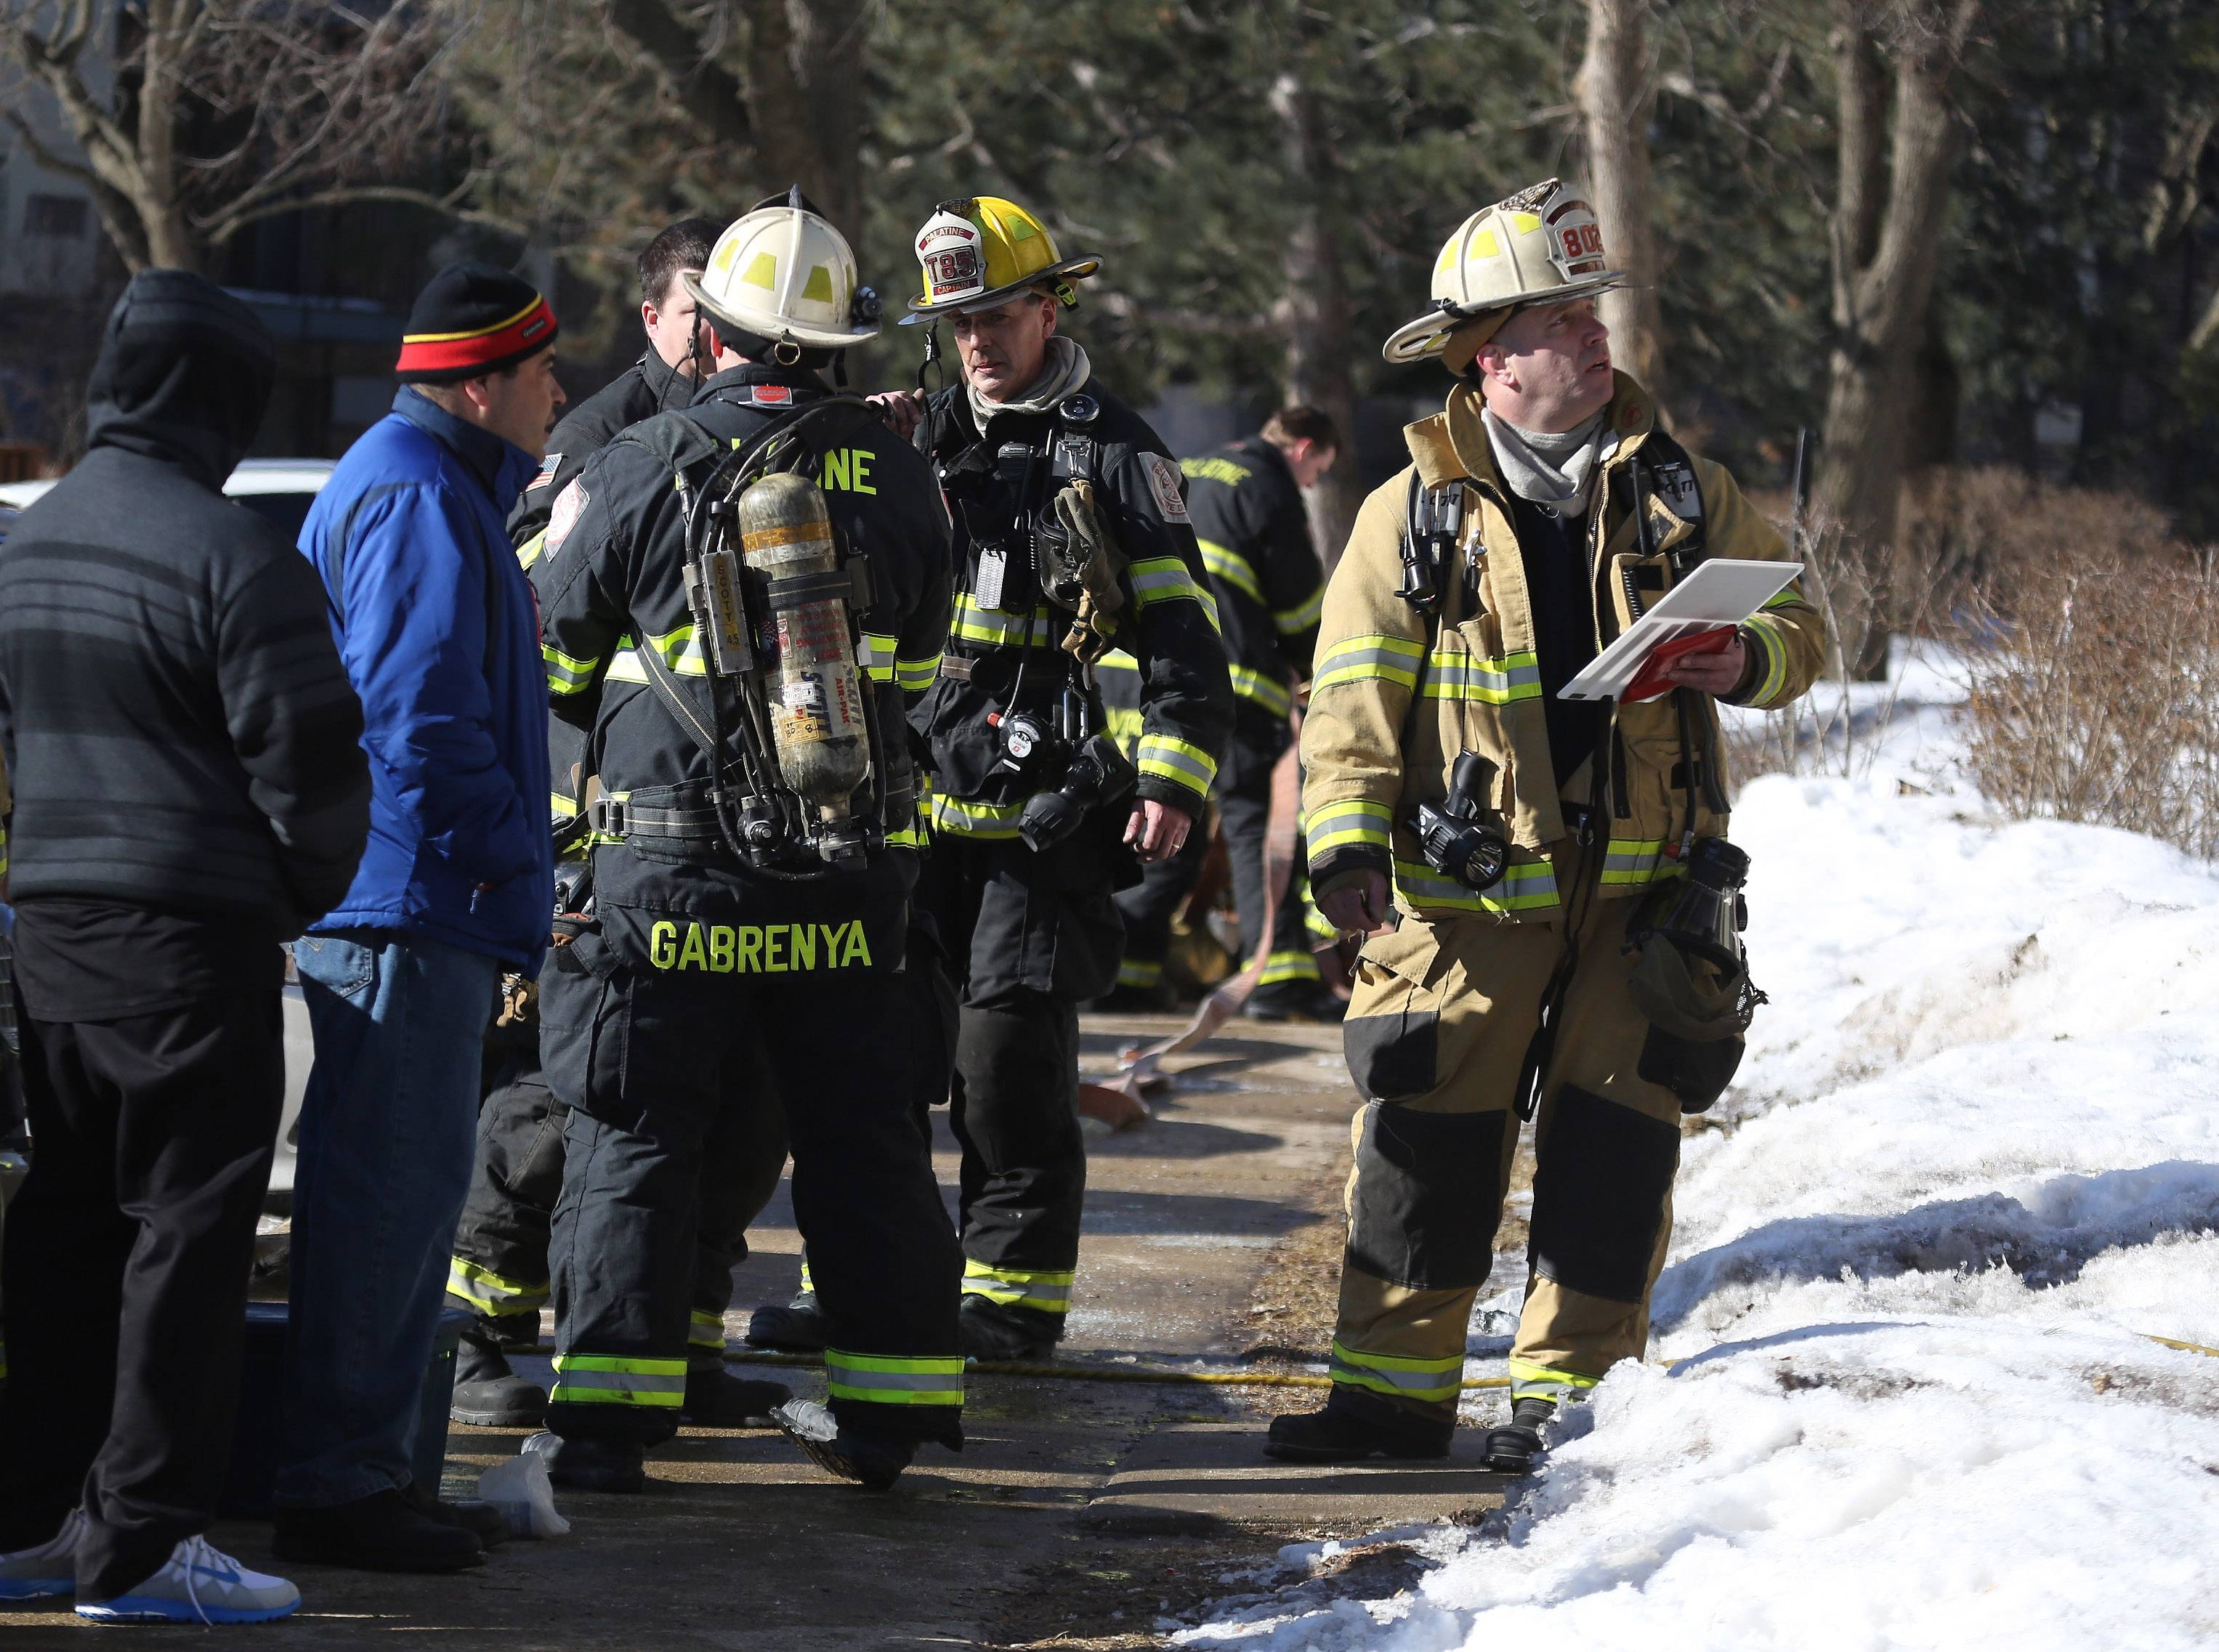 Palatine firefighters responded to a condominium fire Sunday morning at the Brentwood of Palatine Condominiums. Authorities on Monday said it appears the blaze started when items stored too closely to a space heater ignited.